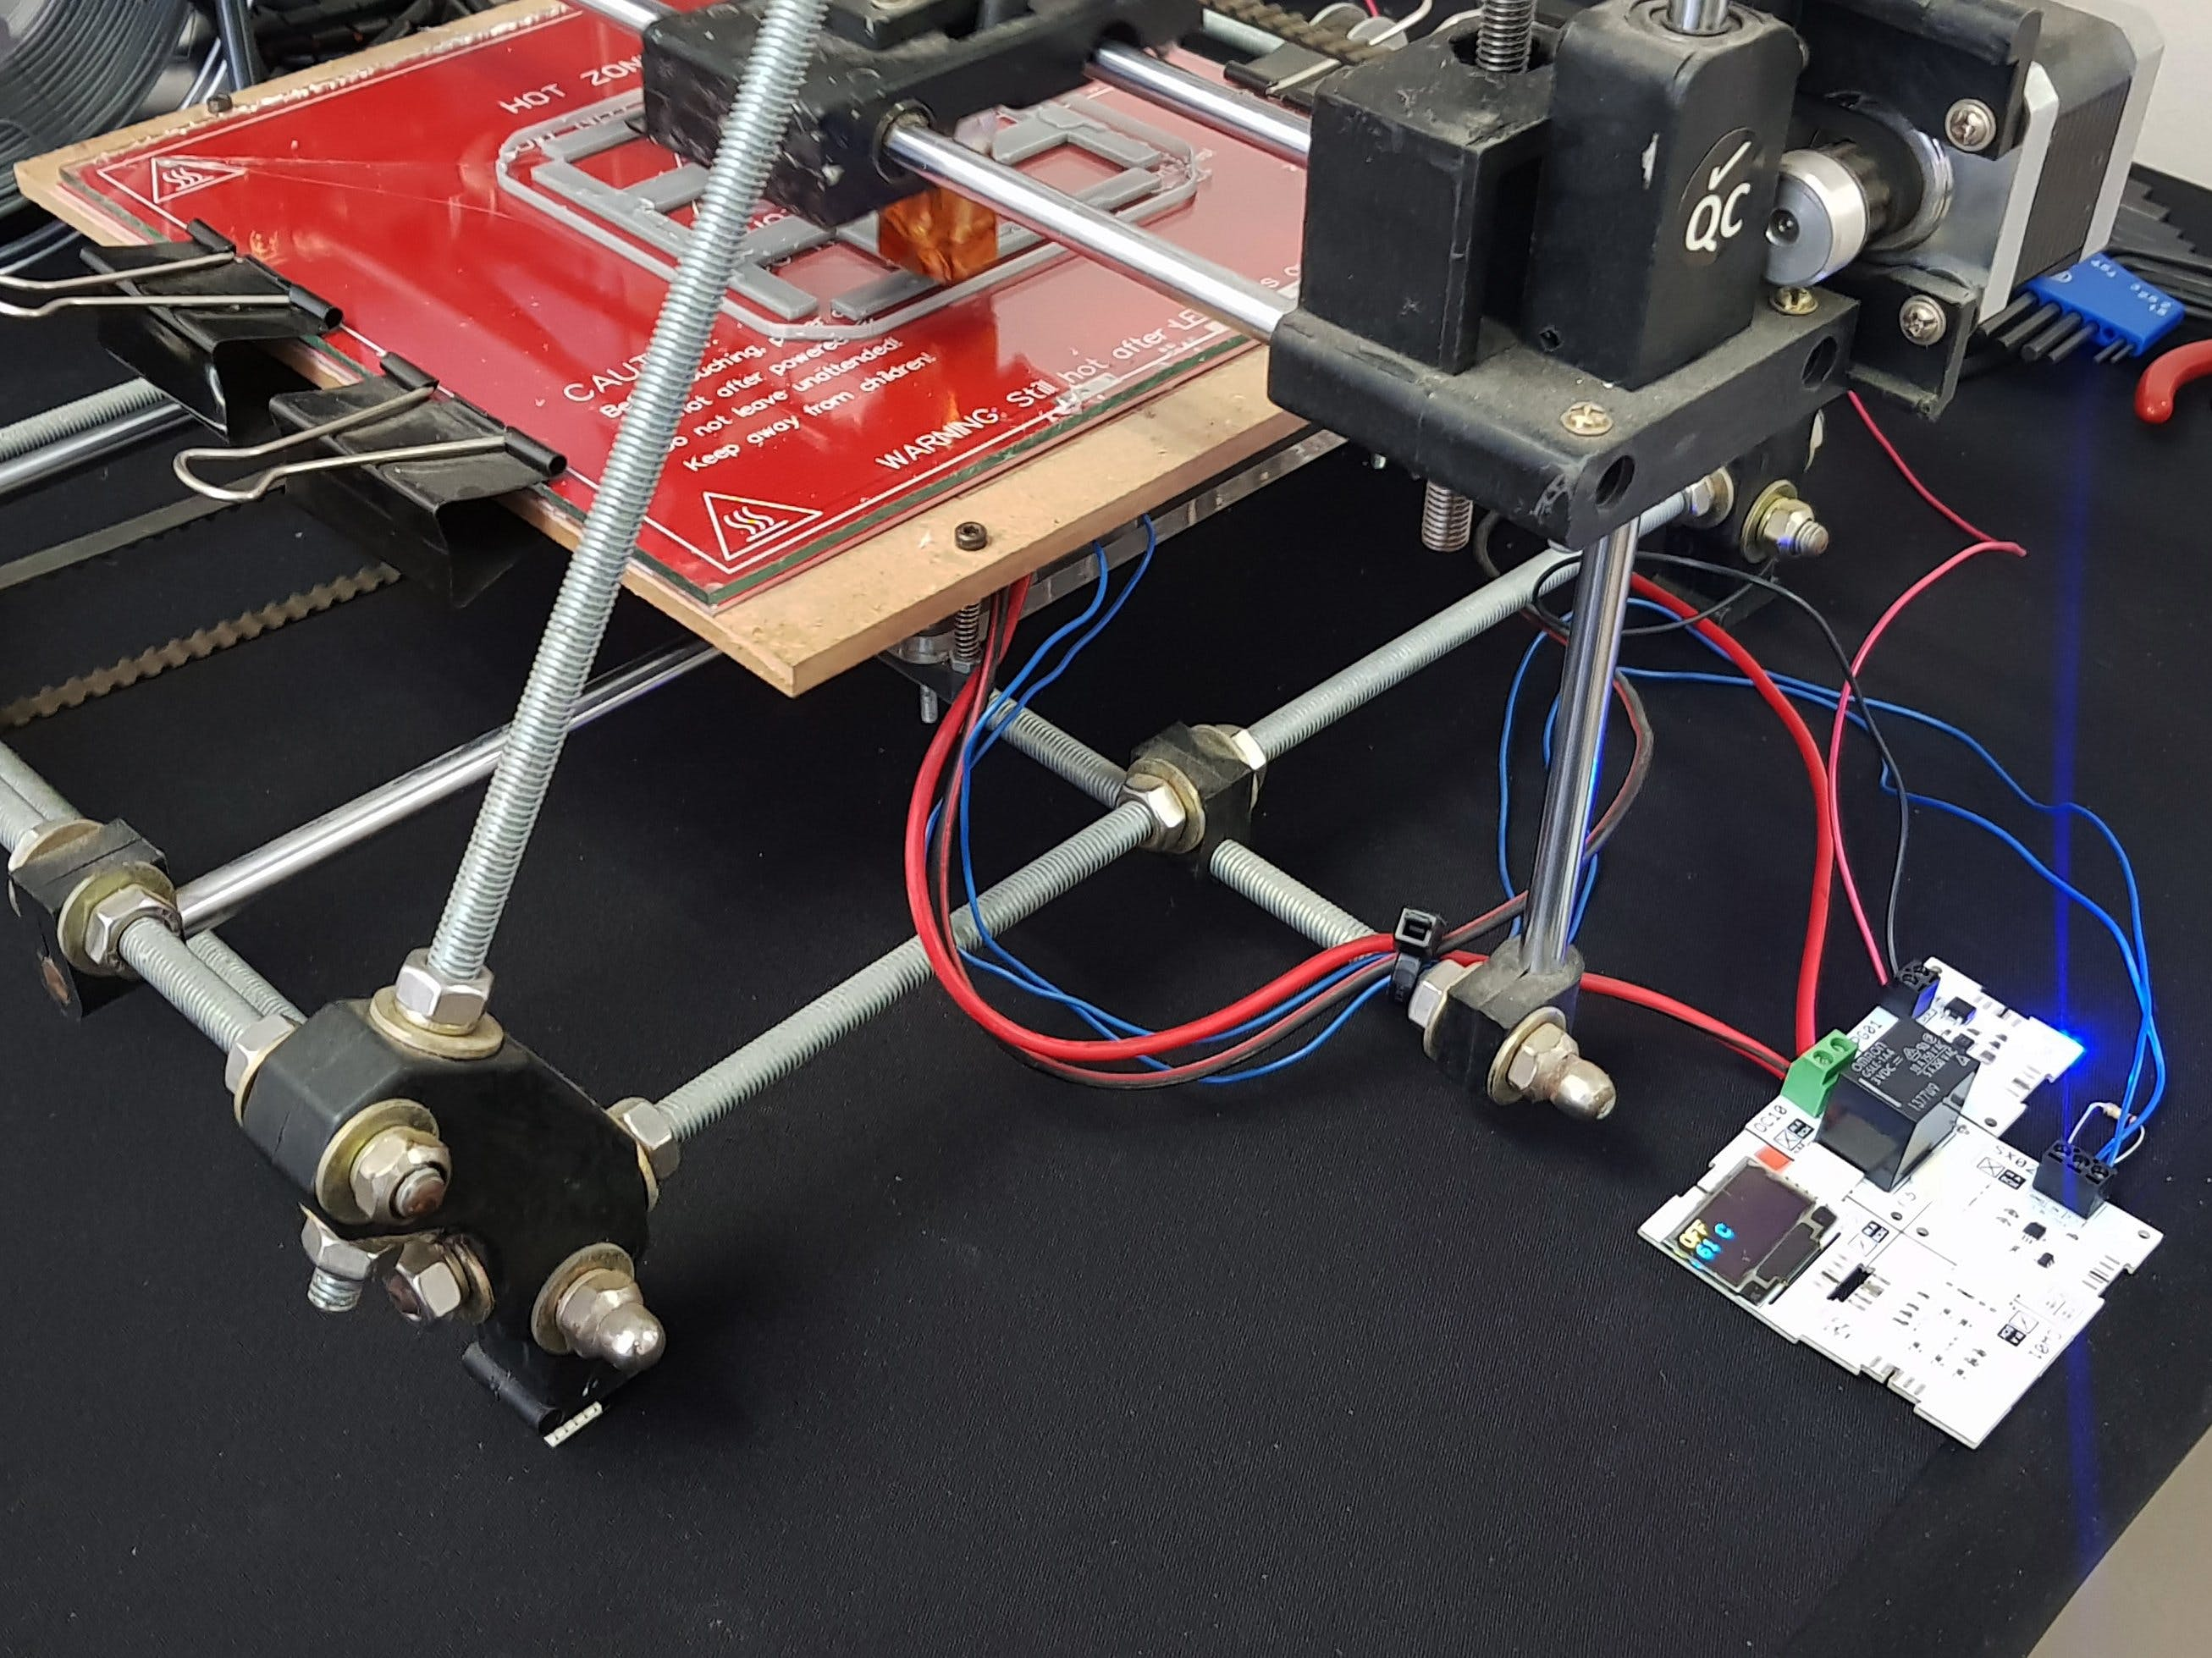 3D Printer Heat Bed Control Using XinaBox